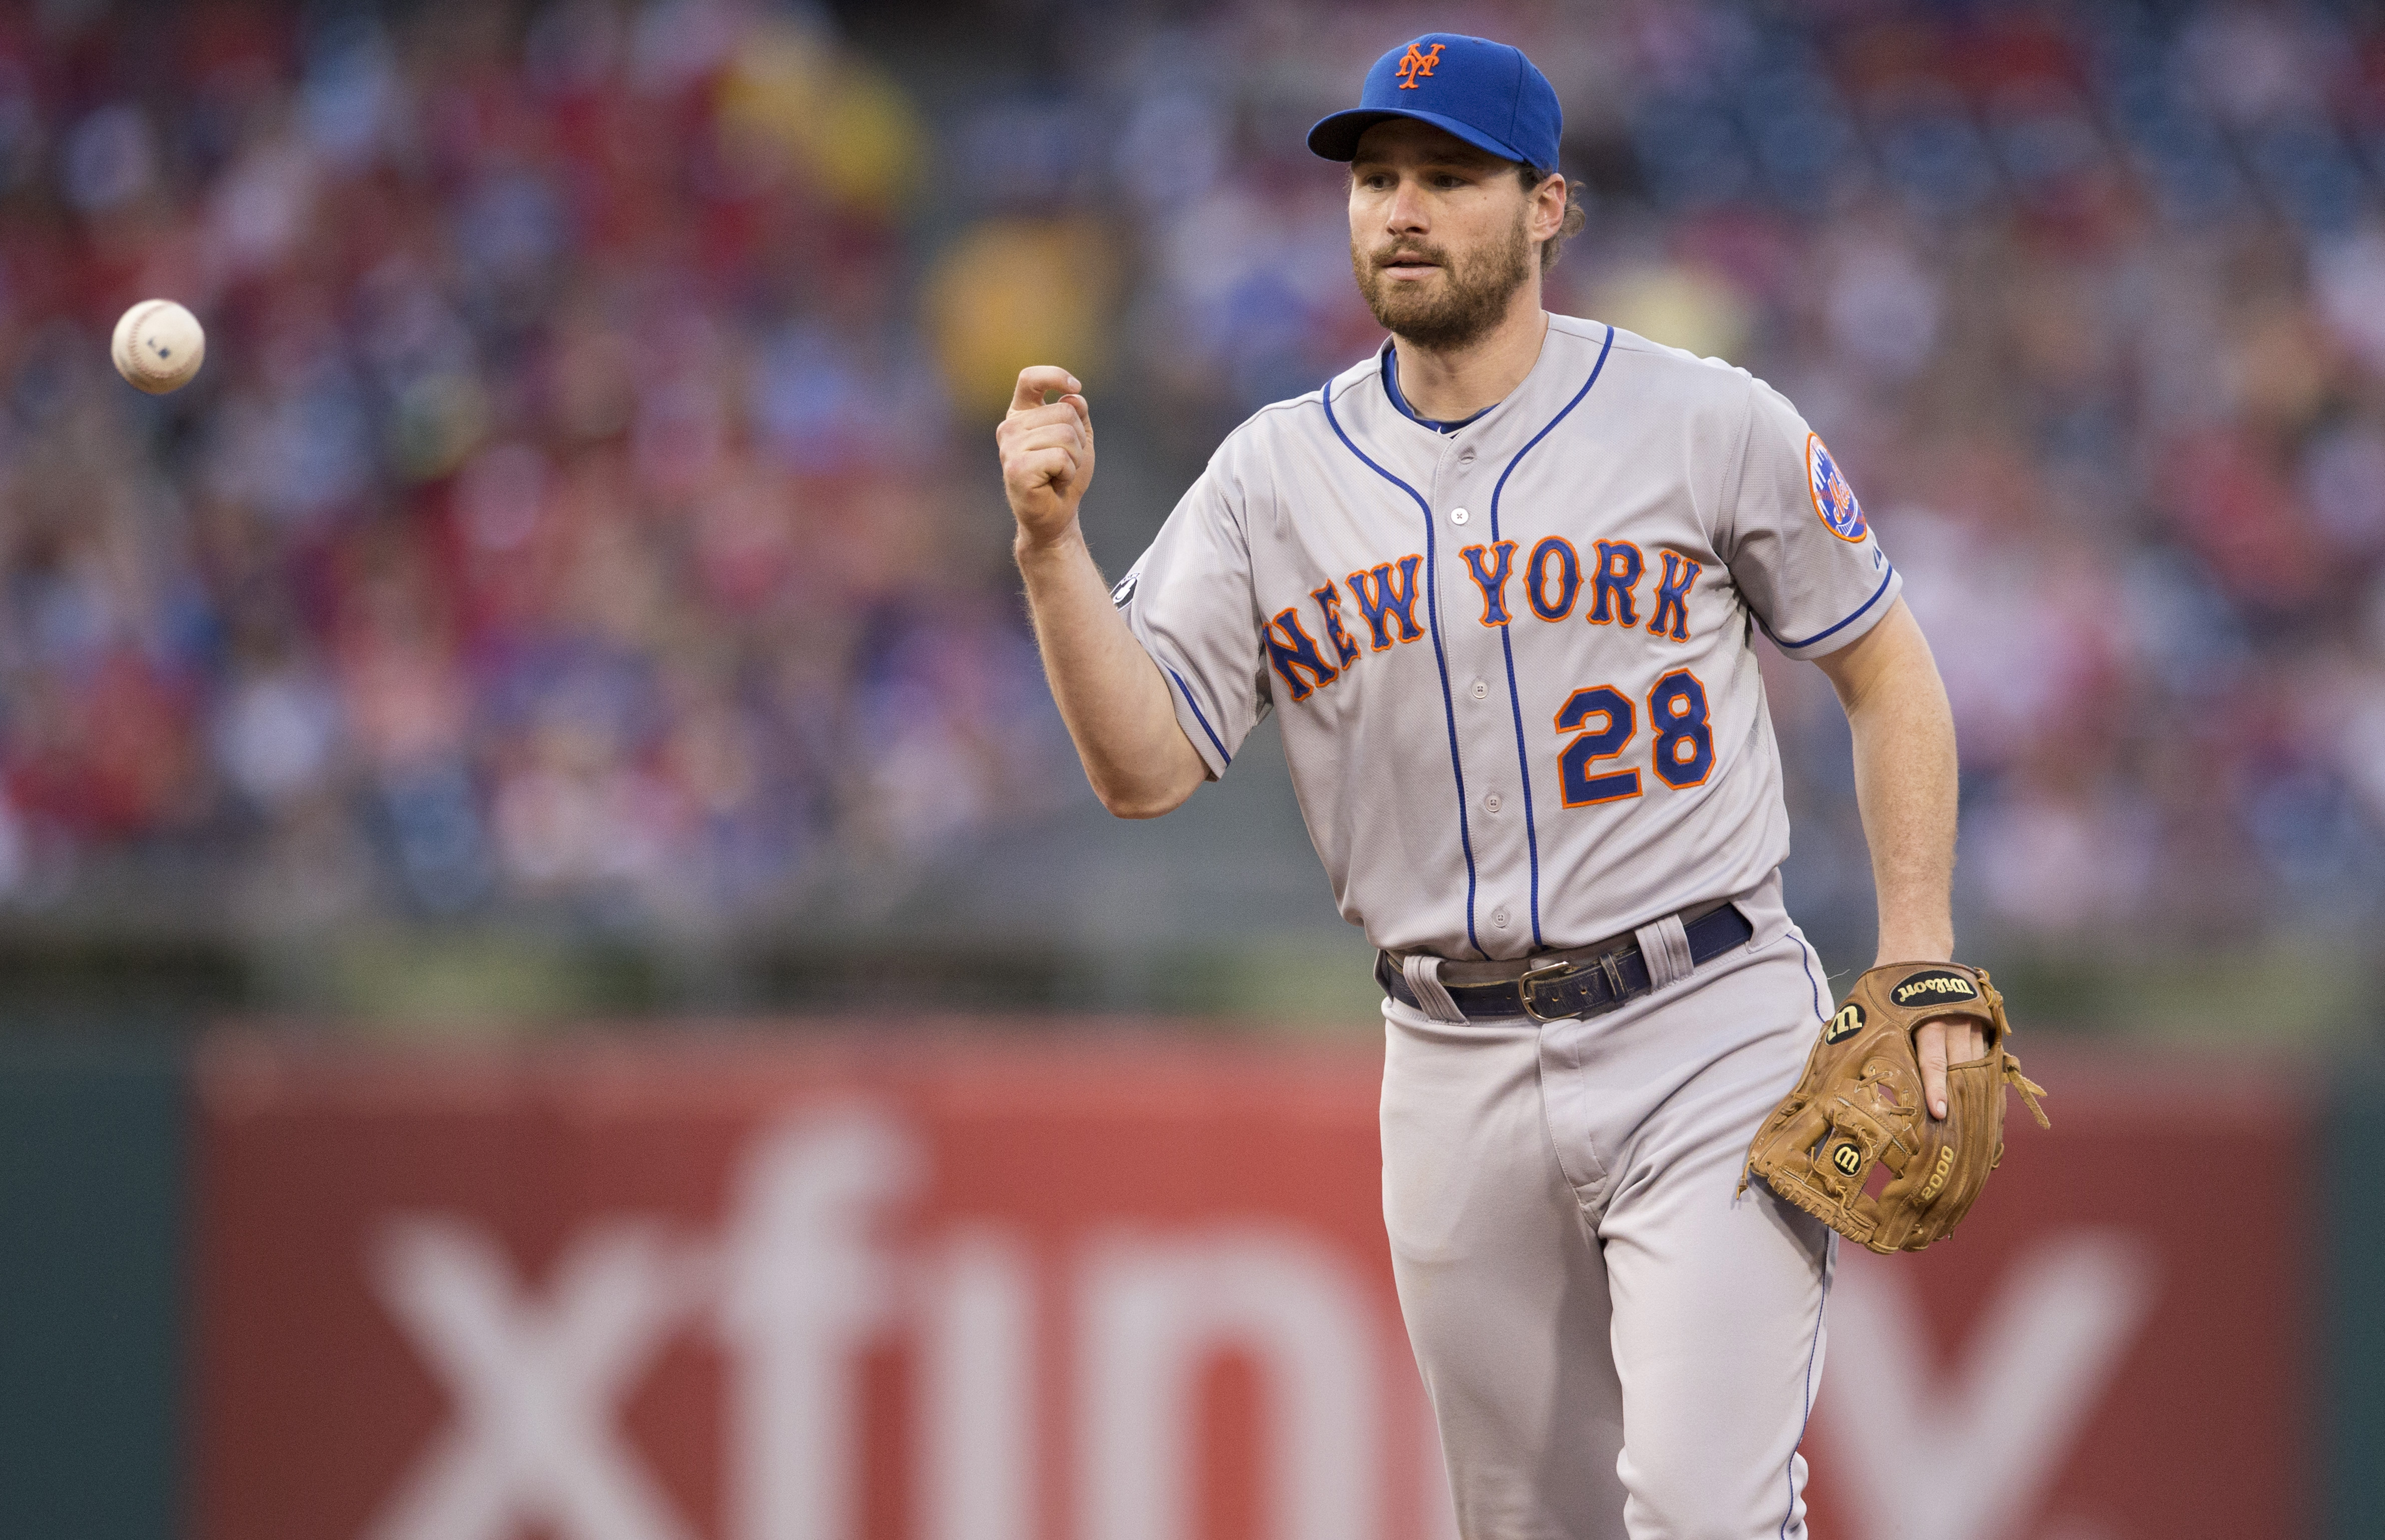 PHILADELPHIA, PA - AUGUST 8: Second baseman Daniel Murphy #28 of the New York Mets flips the ball to first base to complete a double play in the bottom of the second inning against the Philadelphia Phillies on August 8, 2014 at Citizens Bank Park in Philadelphia, Pennsylvania. (Photo by Mitchell Leff/Getty Images)